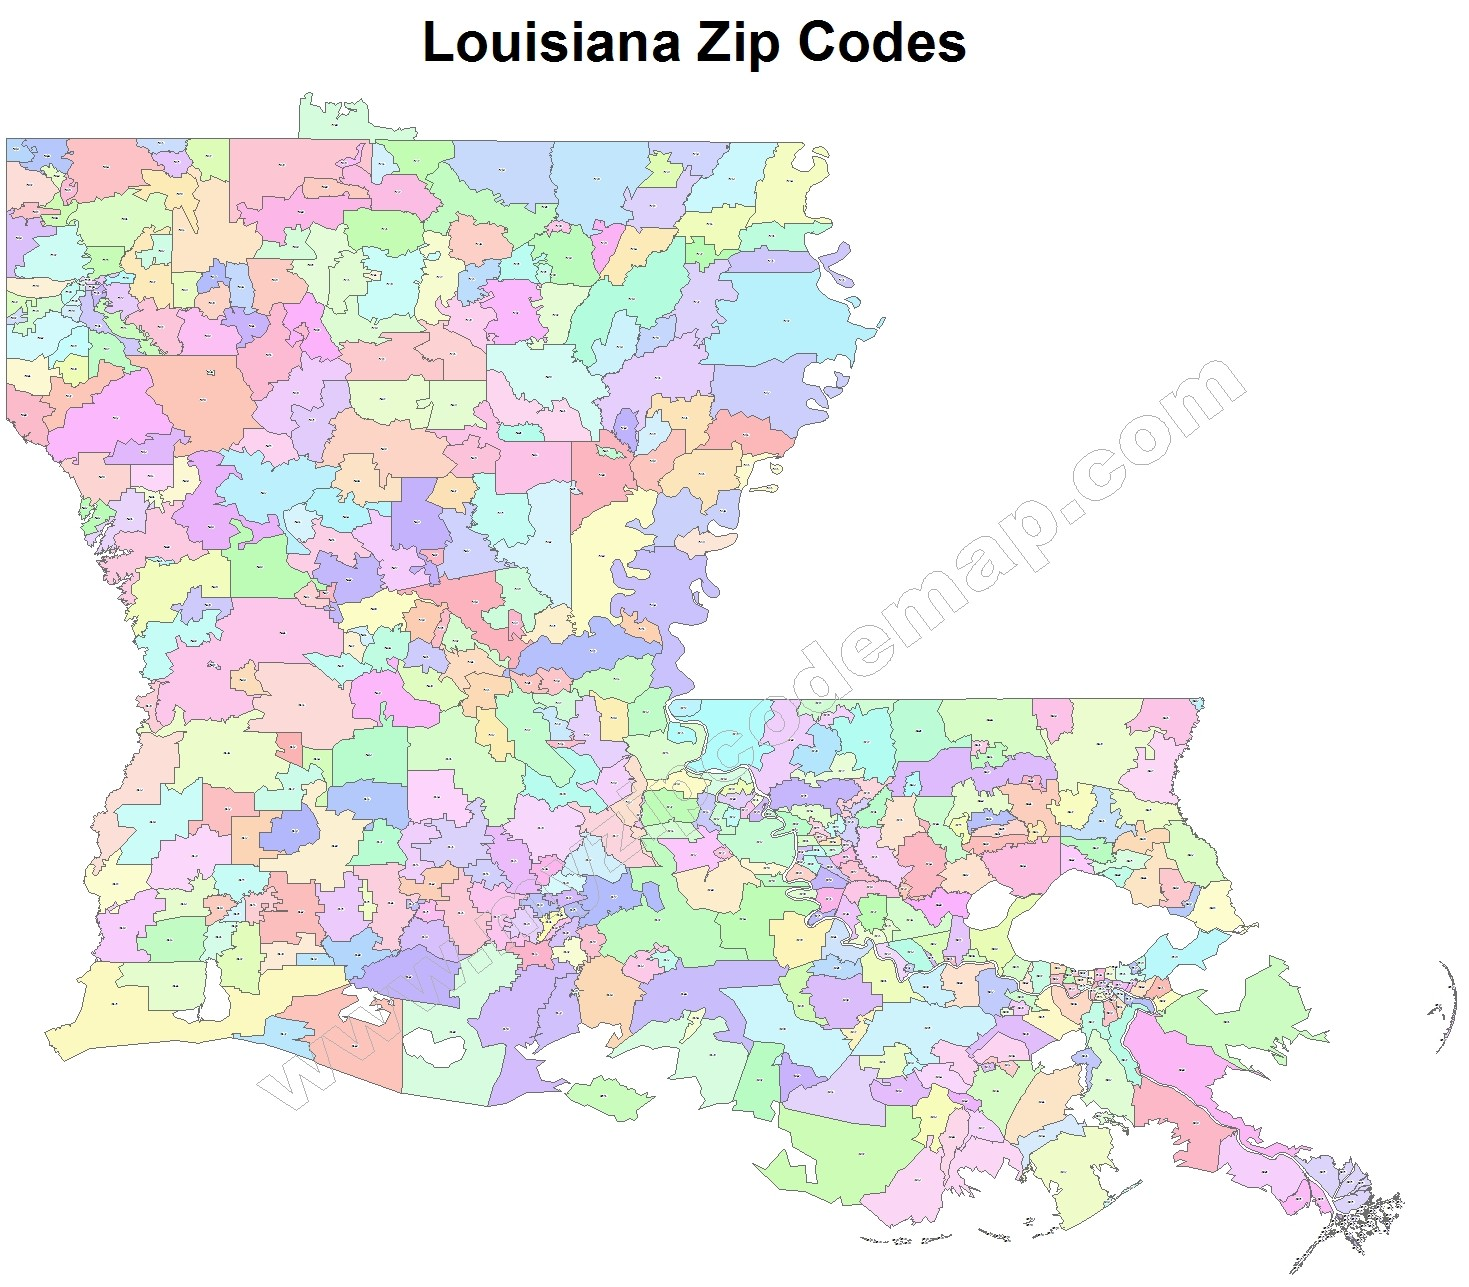 Louisiana Zip Code Maps Free Louisiana Zip Code Maps